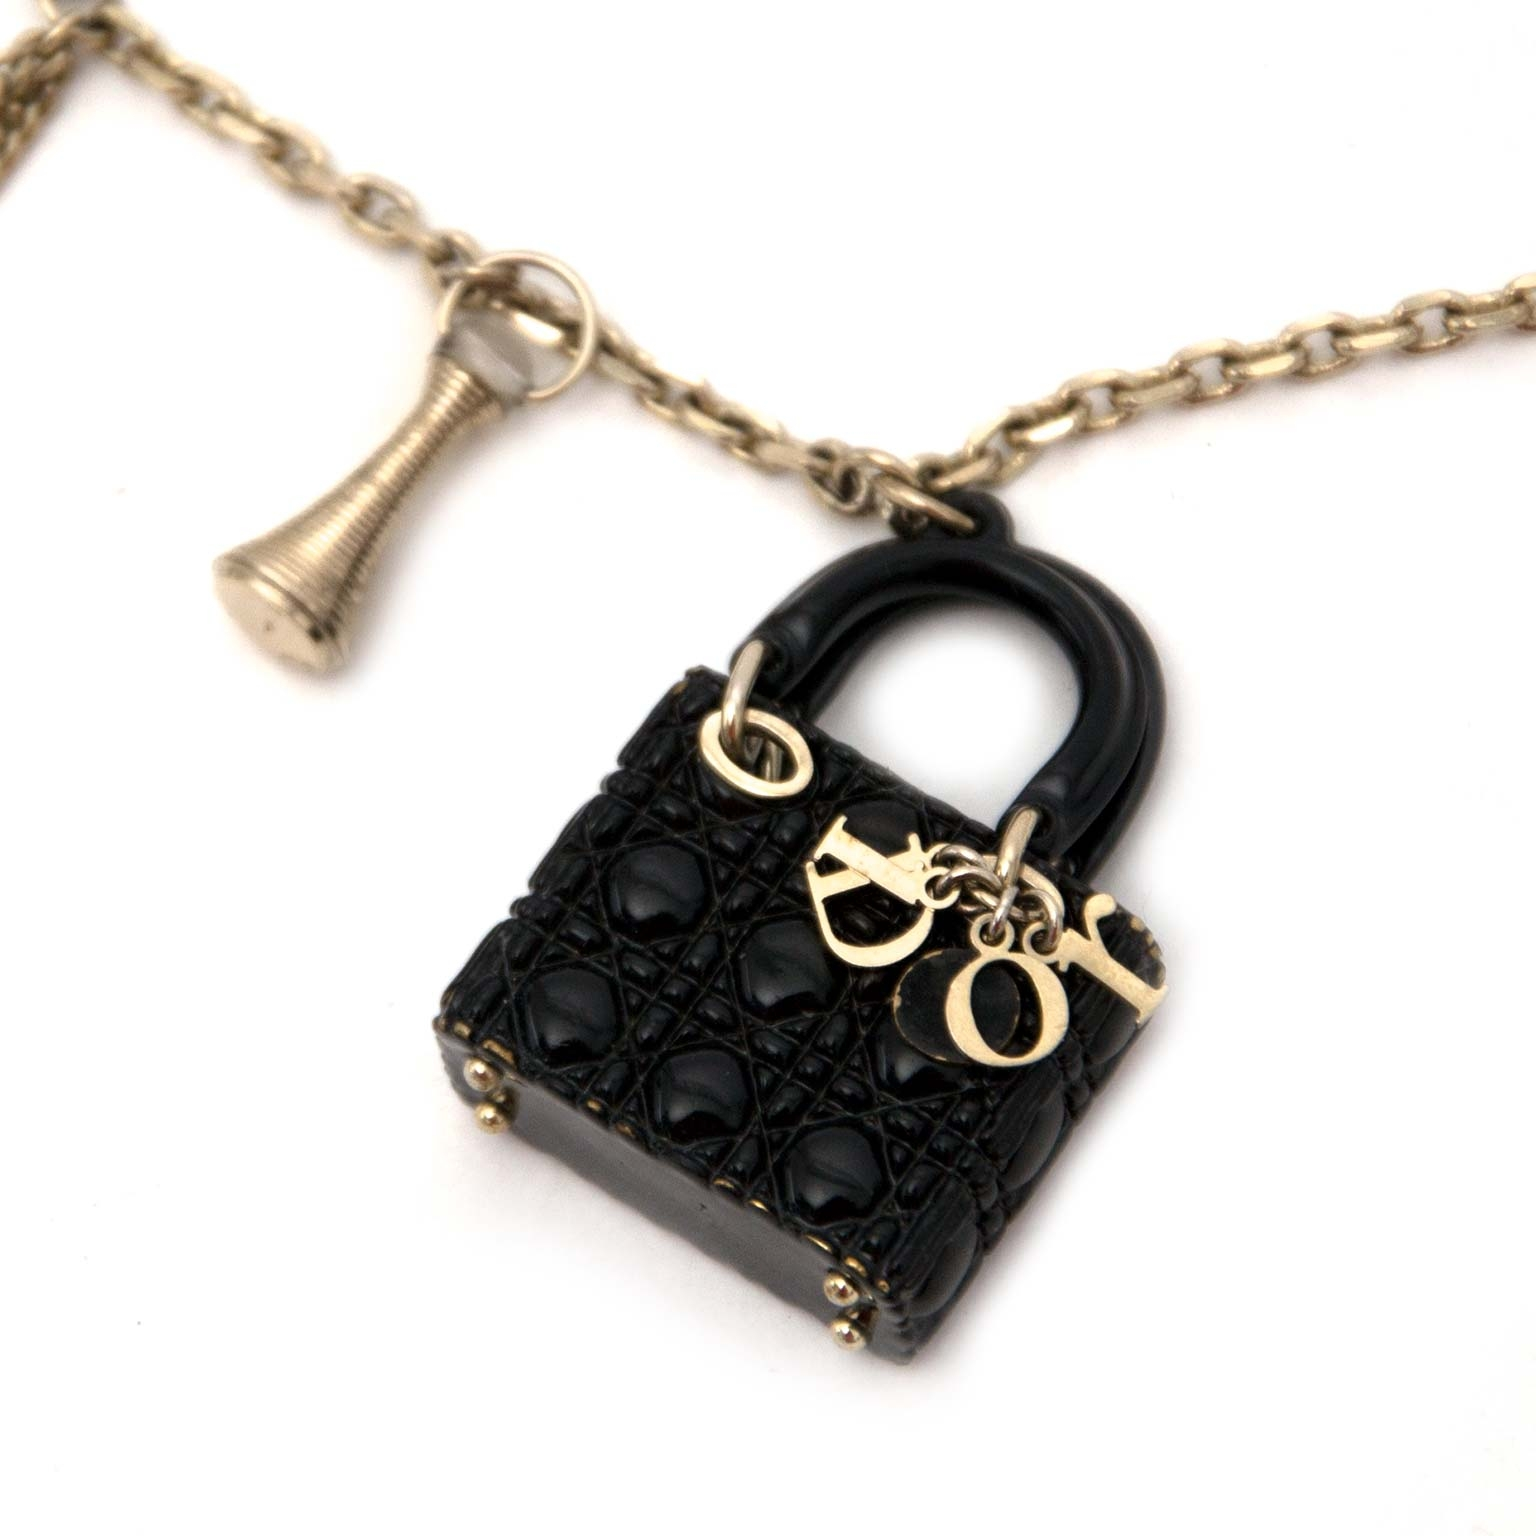 Christian Dior Charm Necklace online secondhand at the best price